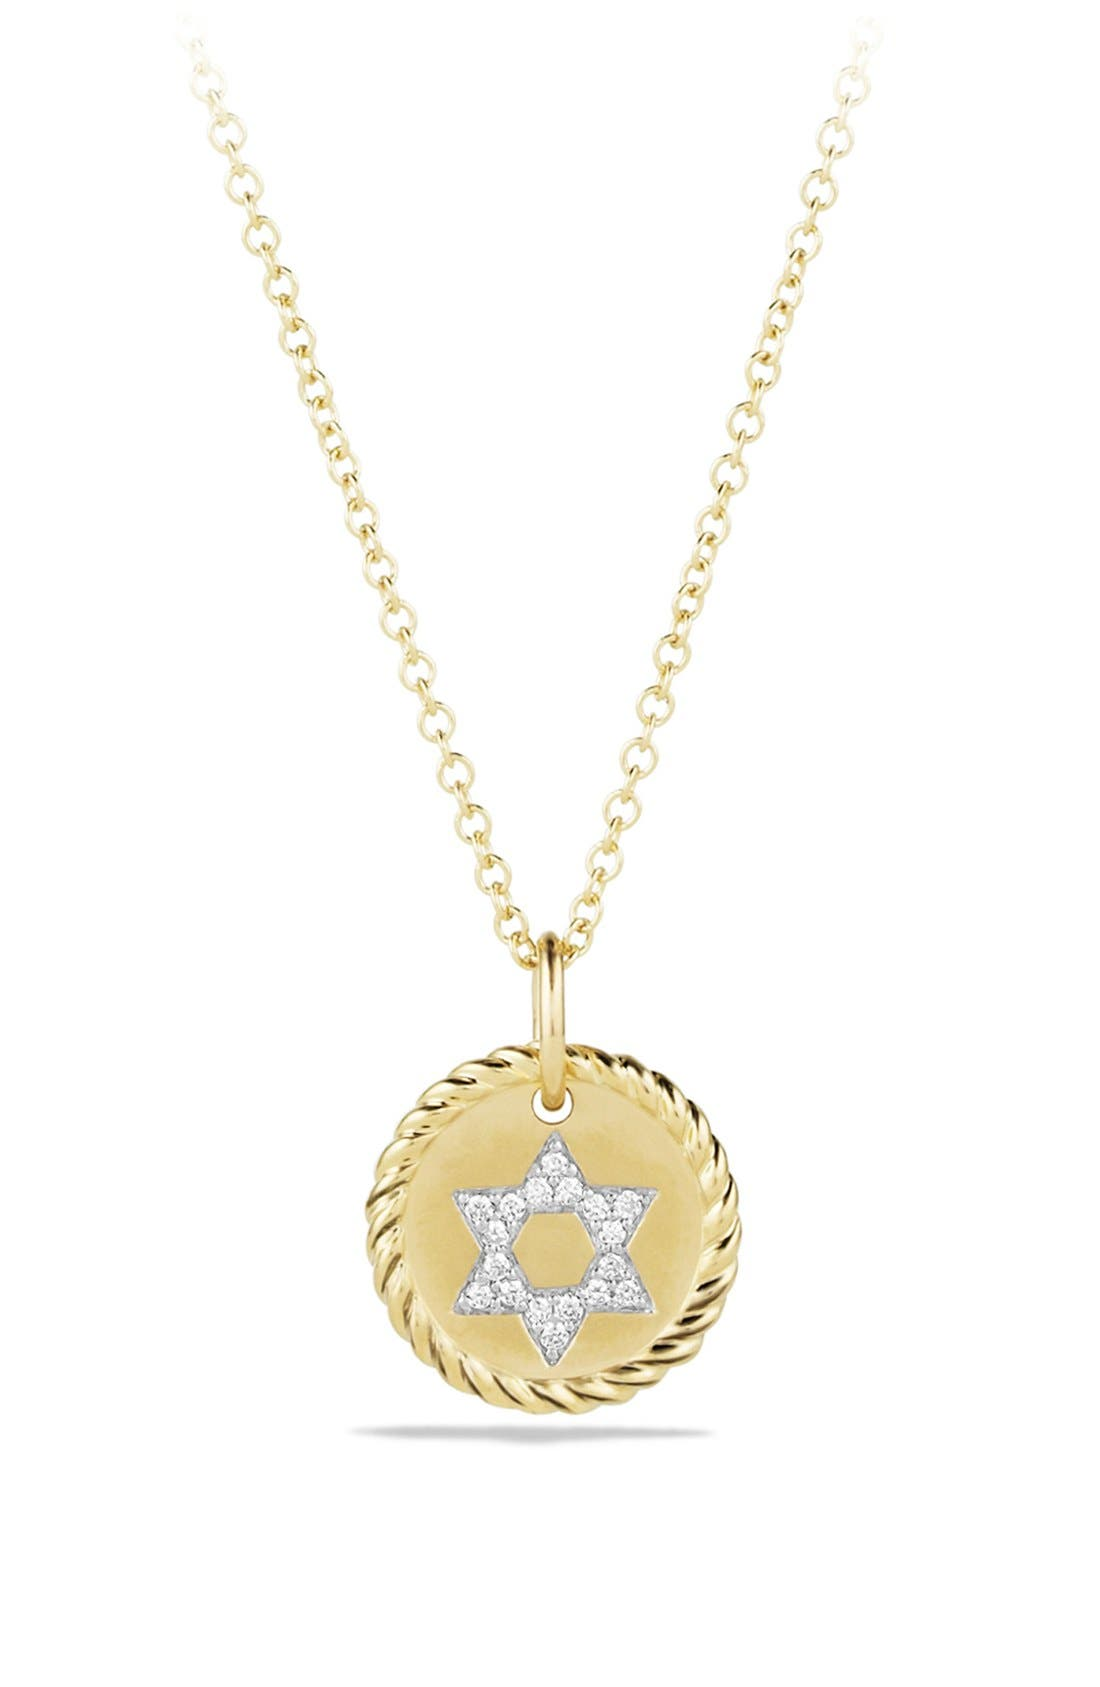 DAVID YURMAN Cable Collectibles Star of David Charm Necklace with Diamonds in Gold